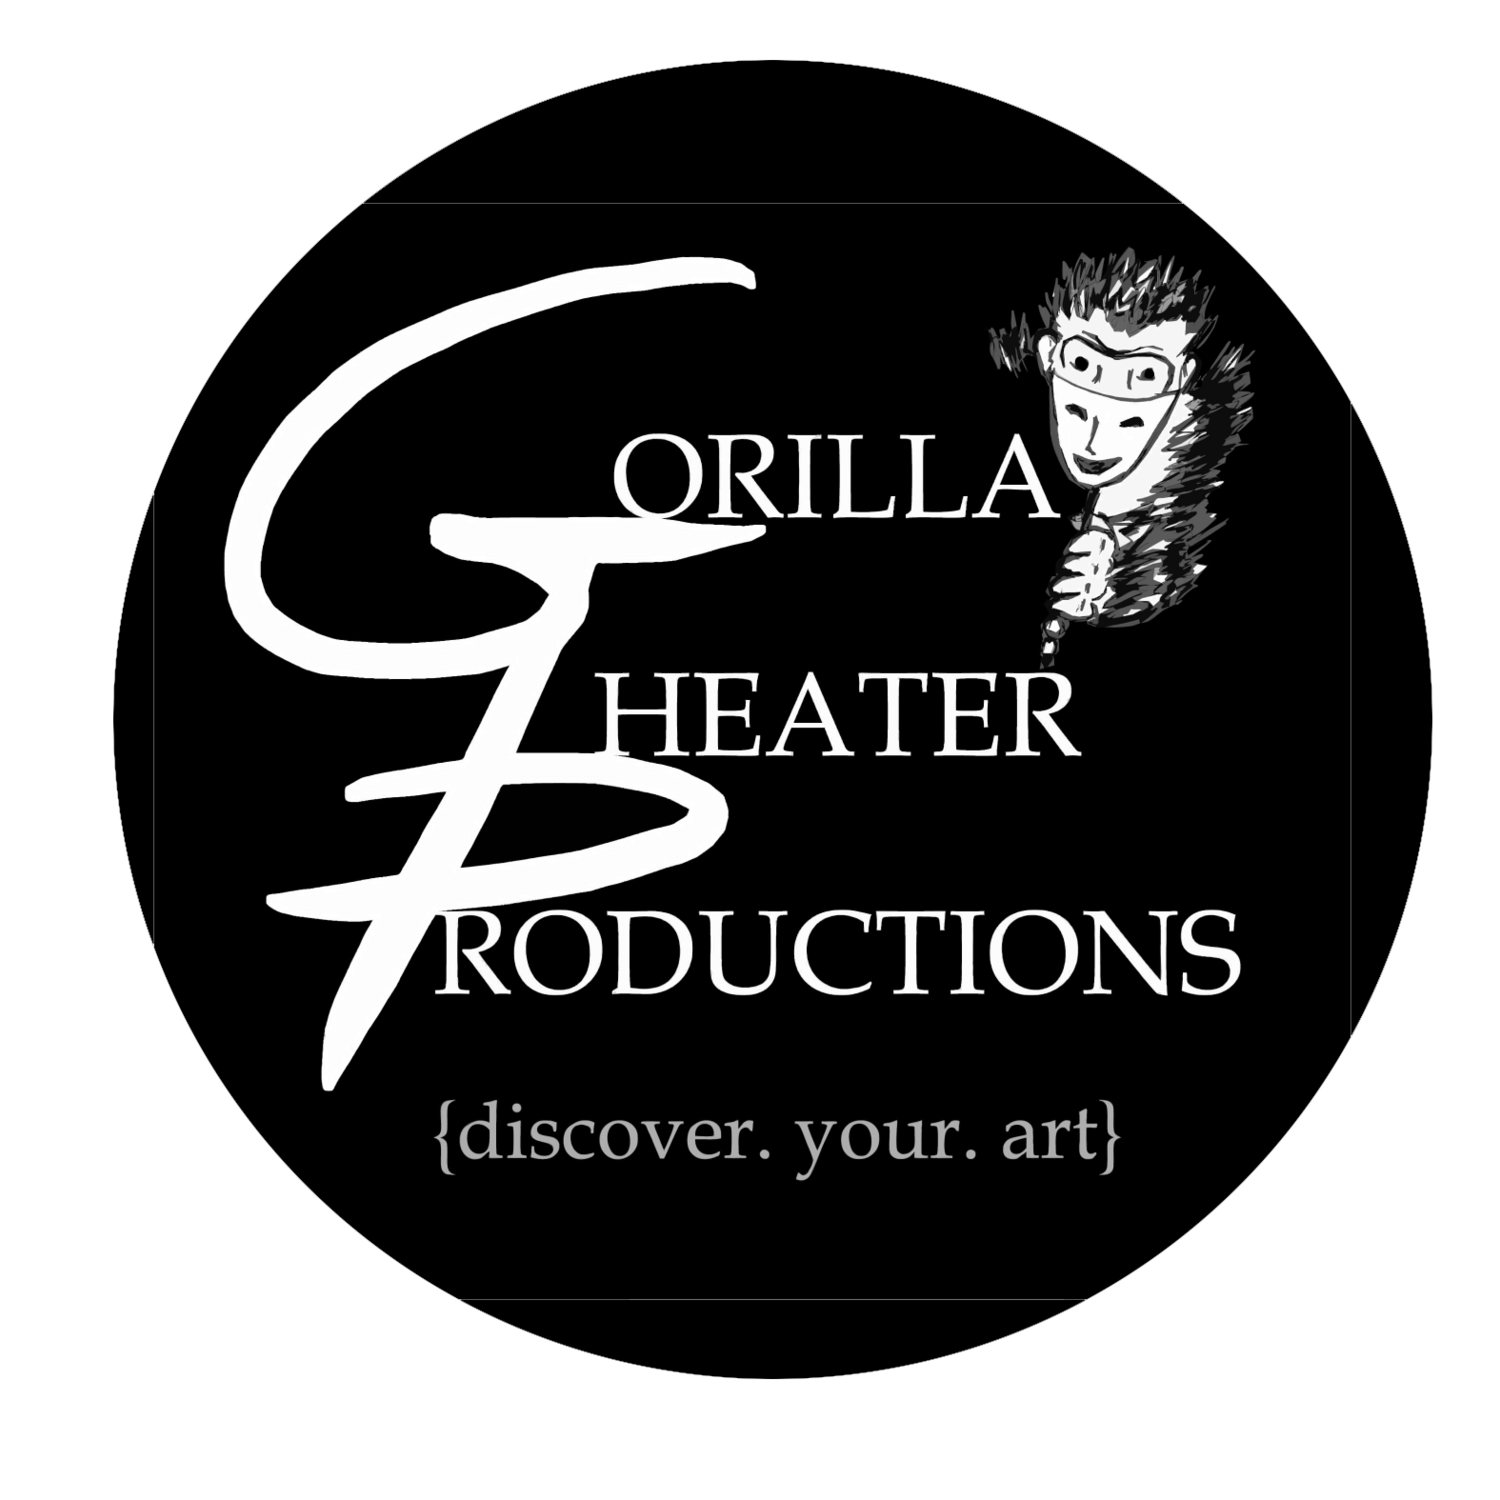 Gorilla theater productions